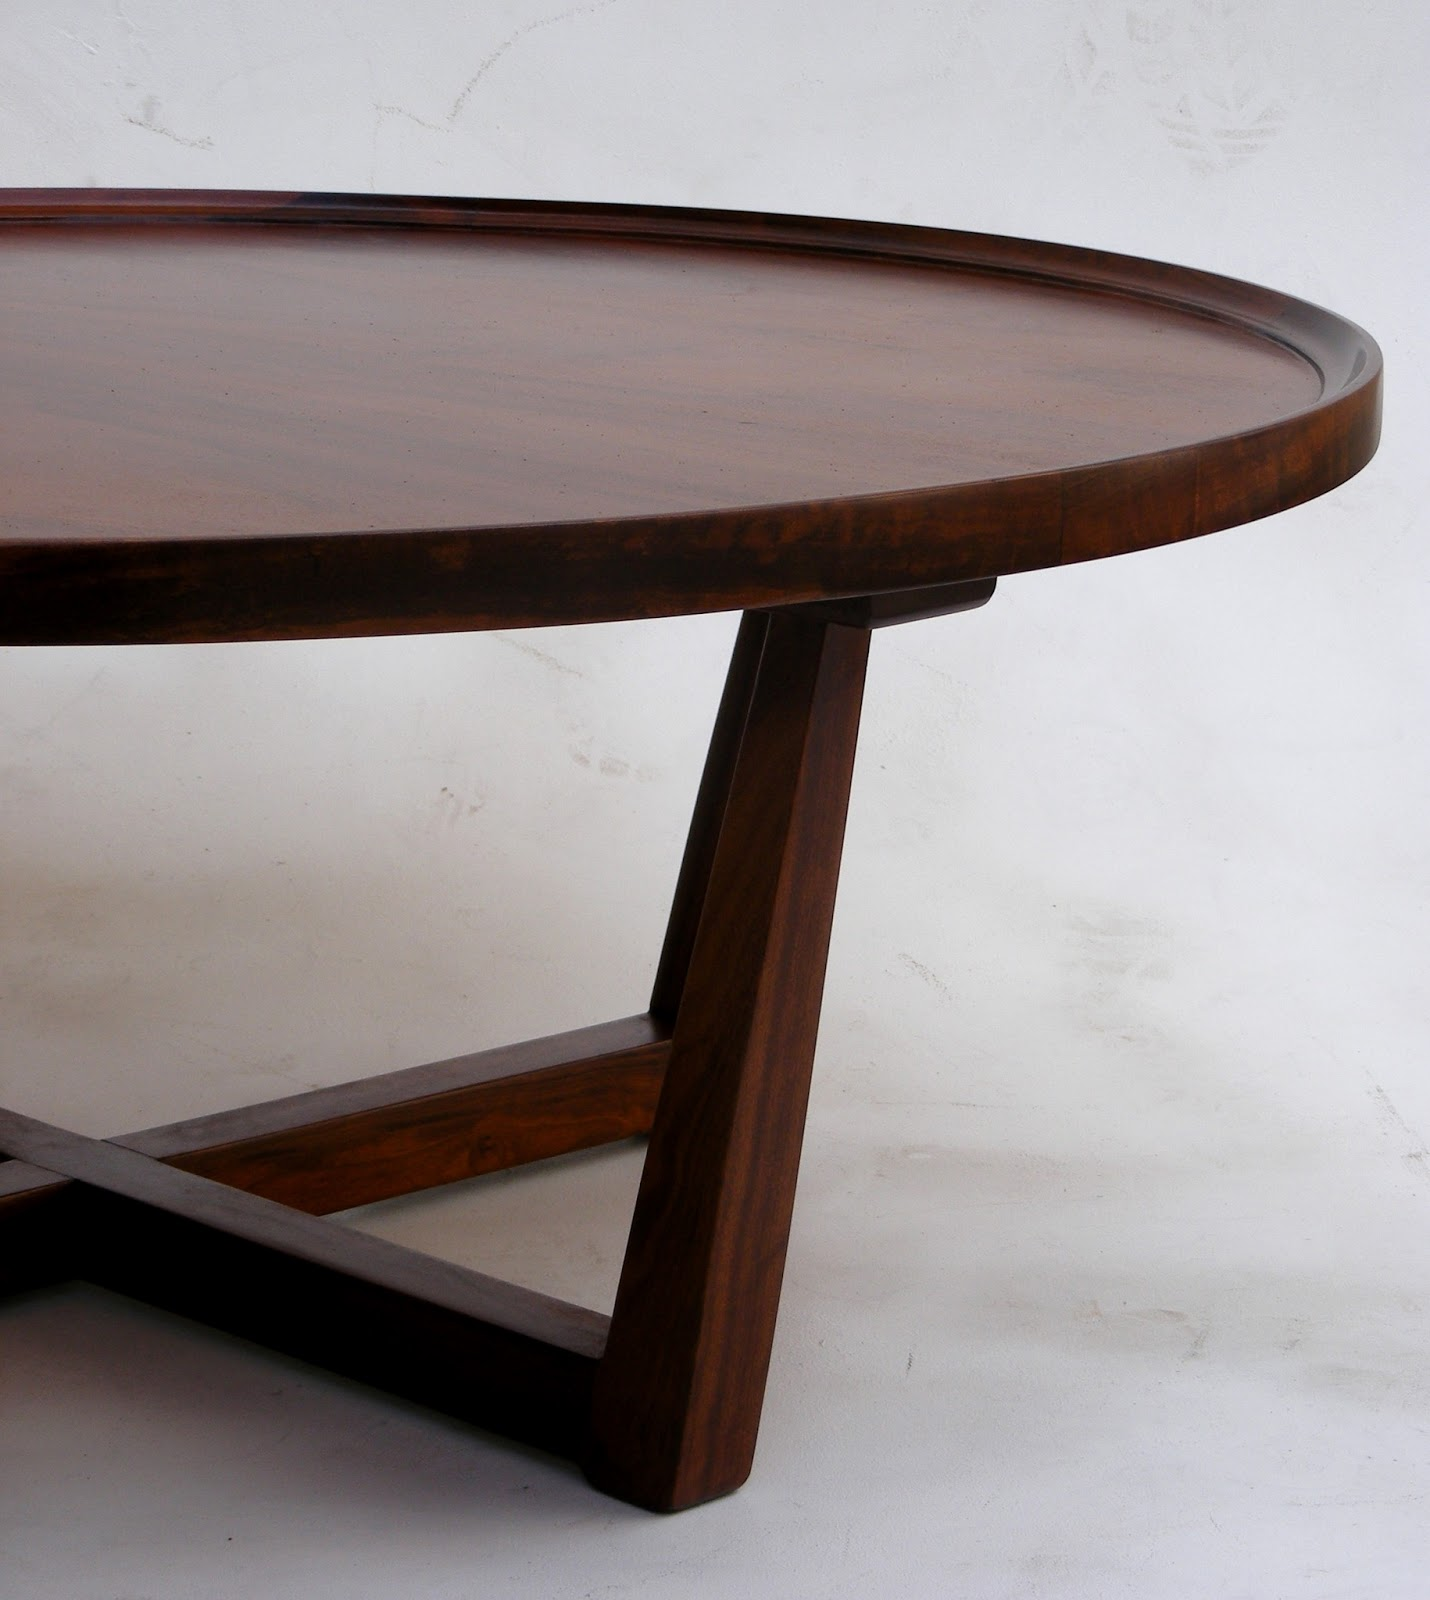 Round Coffee Tables Cape Town: VAMP FURNITURE: New Vintage Furniture Stock At Vamp